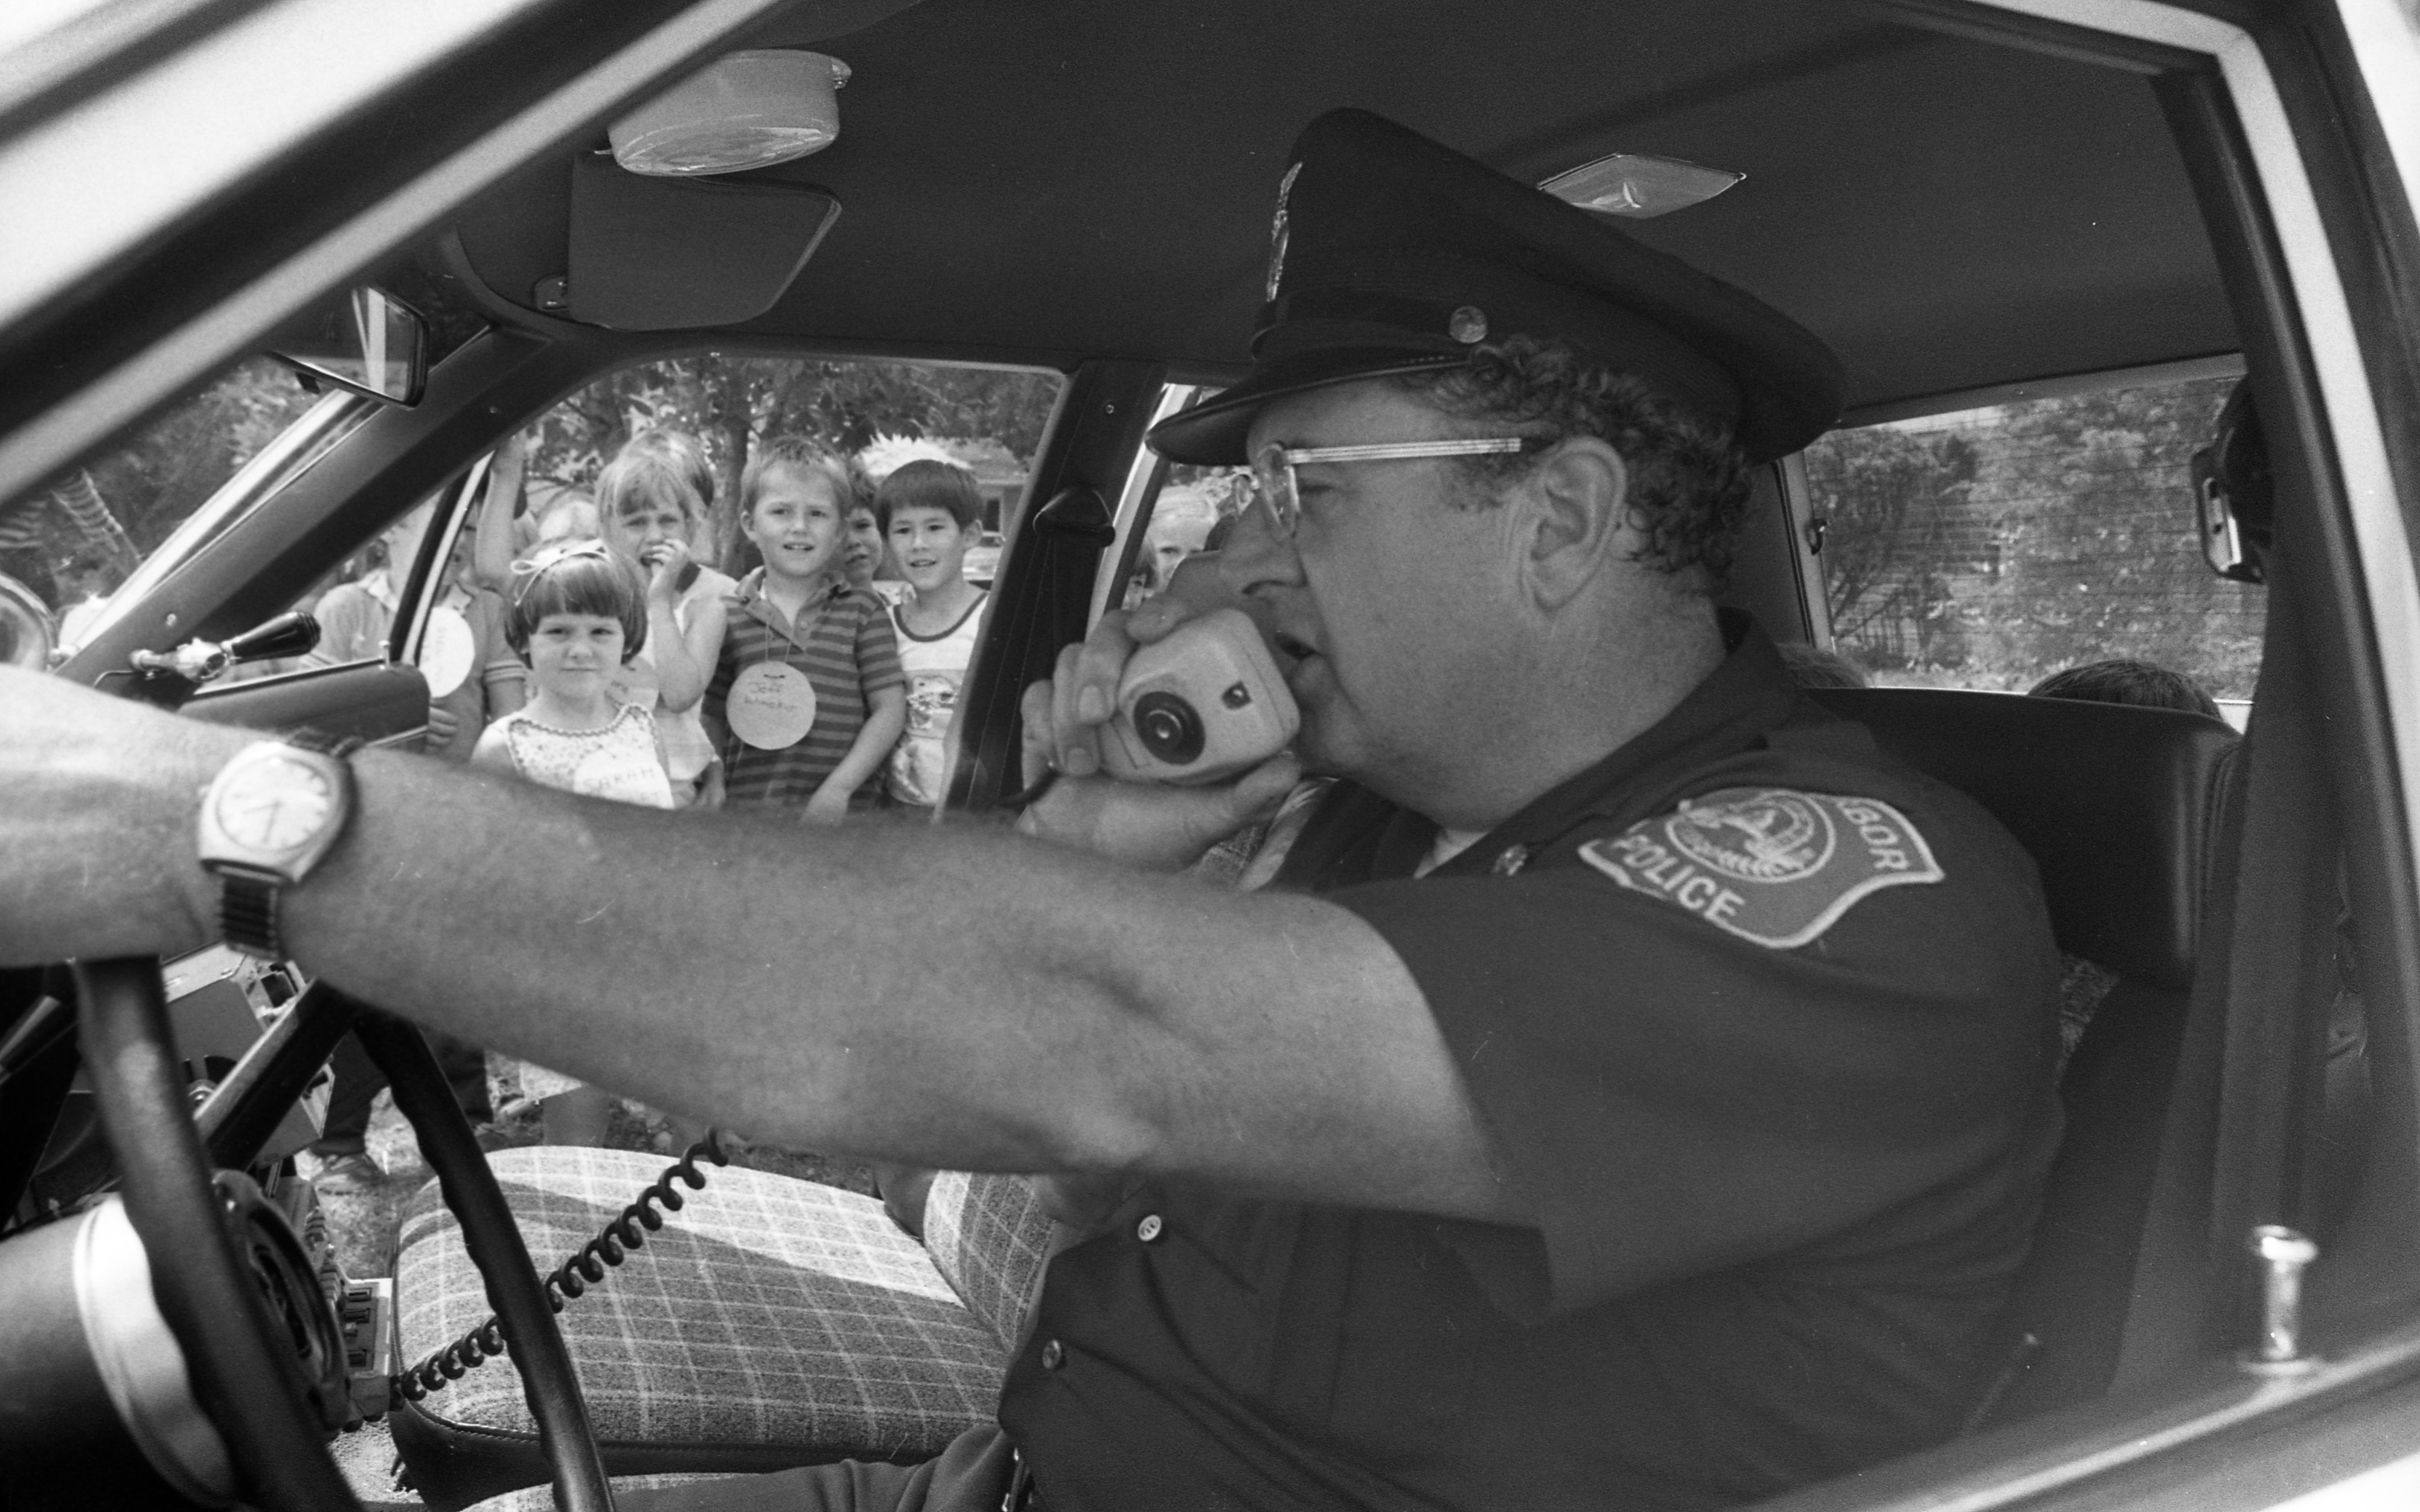 Ann Arbor Police Patrolman Patrick Nolan Demonstrates Loudspeaker at Safety Town, July 1982 image